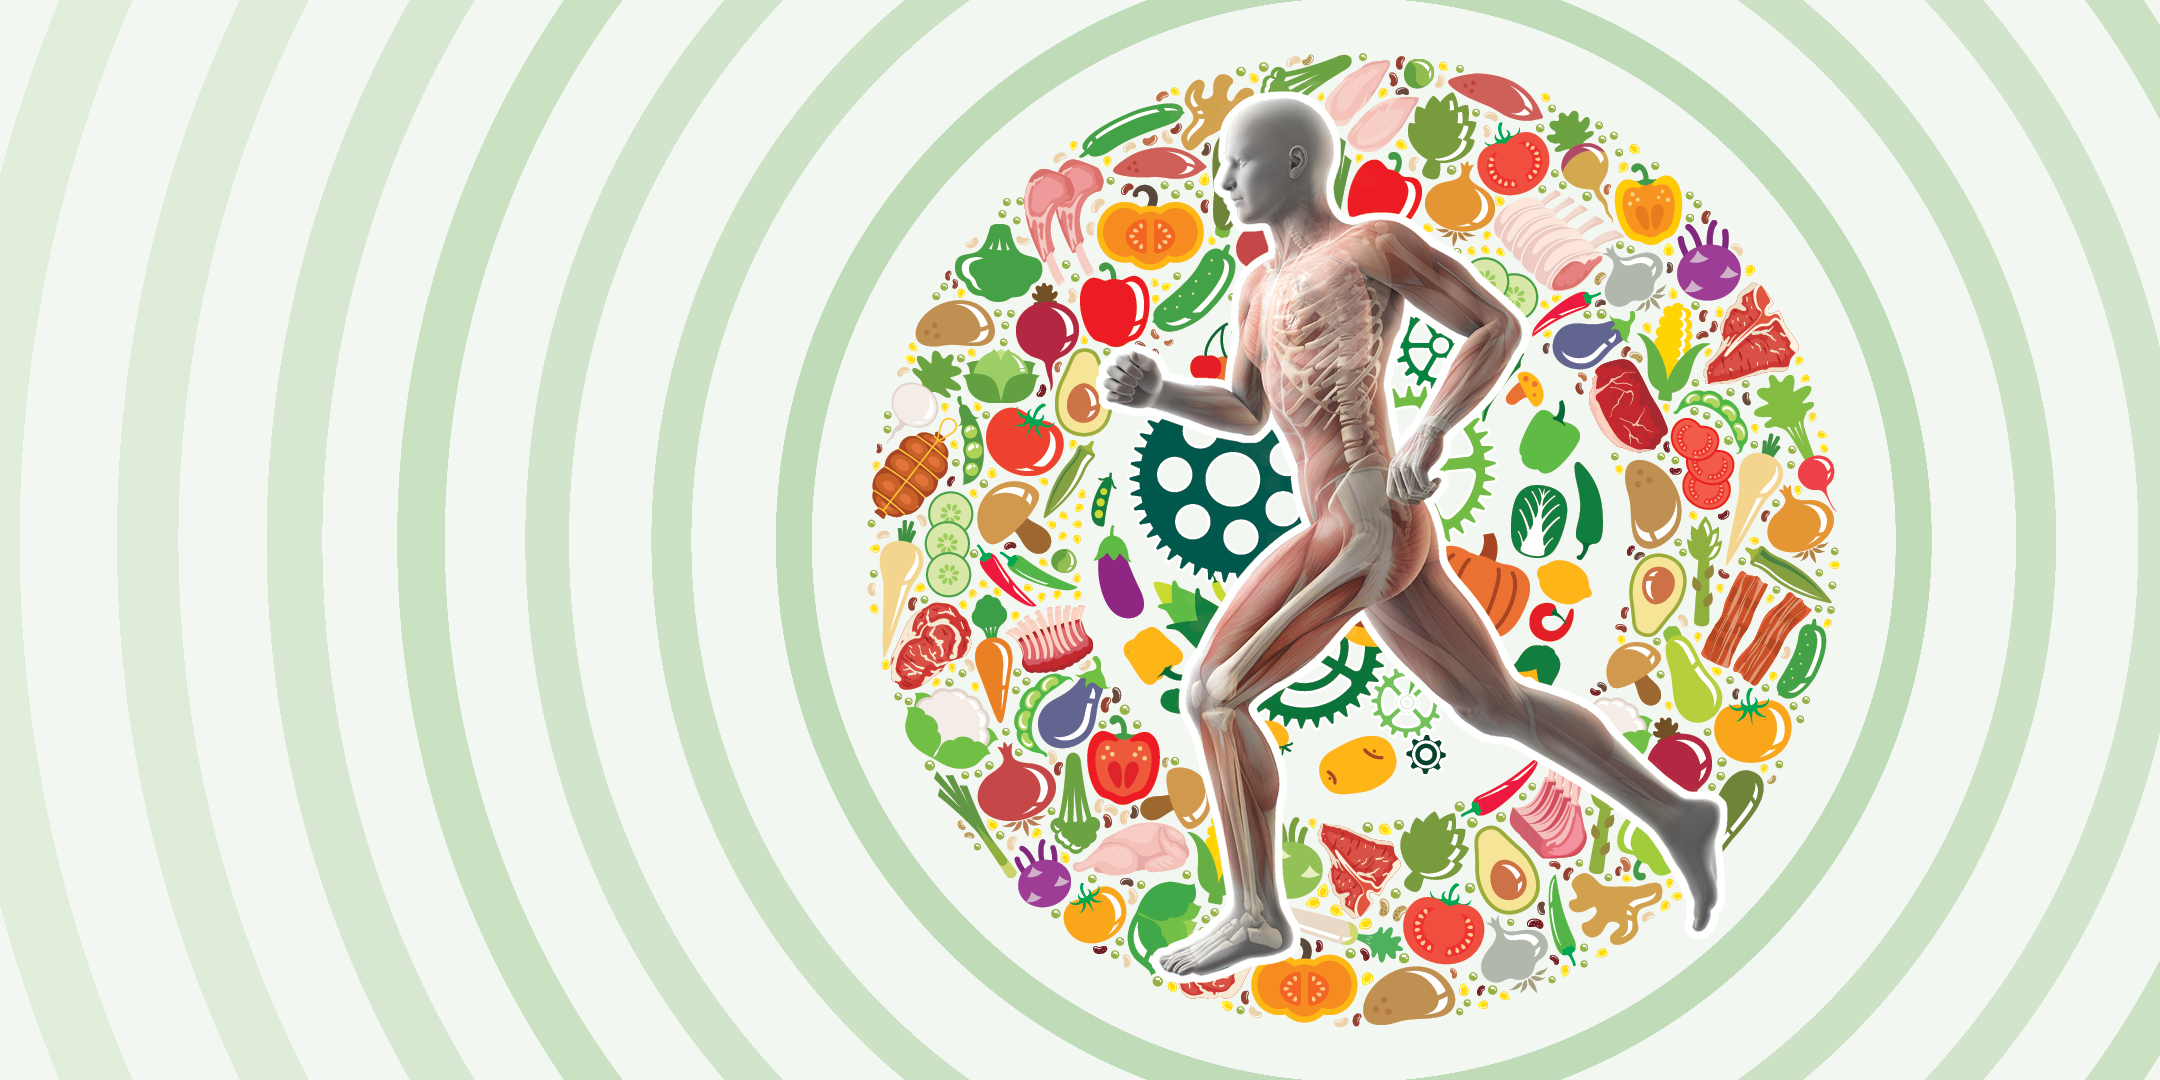 illustration of human jogging surrounded by fruits and vegetables